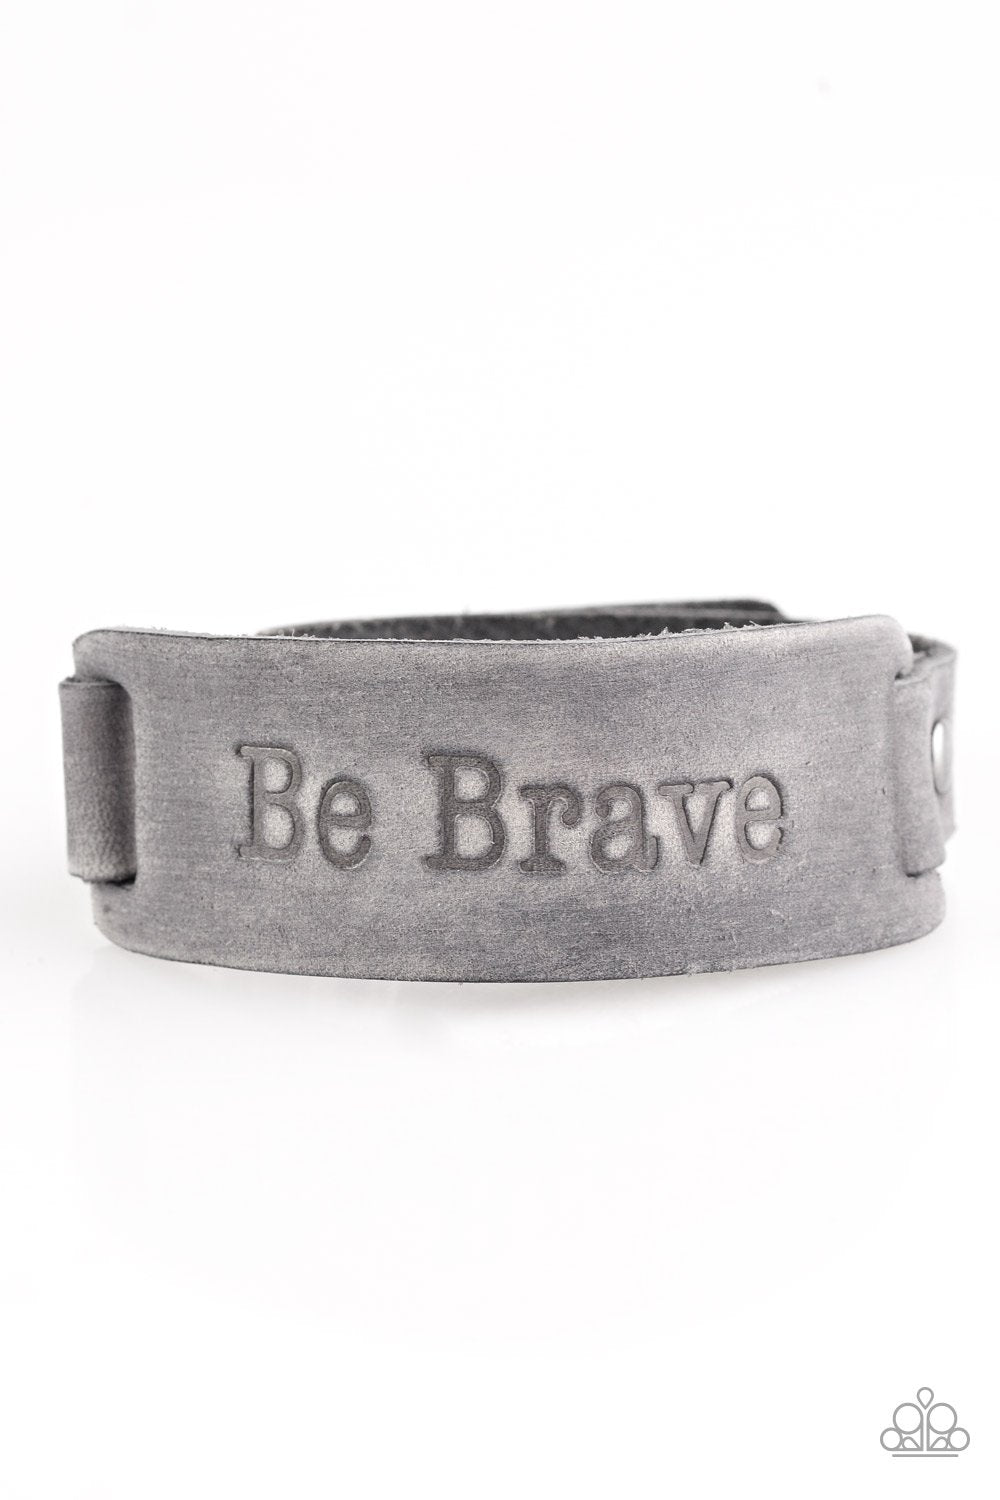 Paparazzi Accessories ~ Put On A Brave Face - Silver